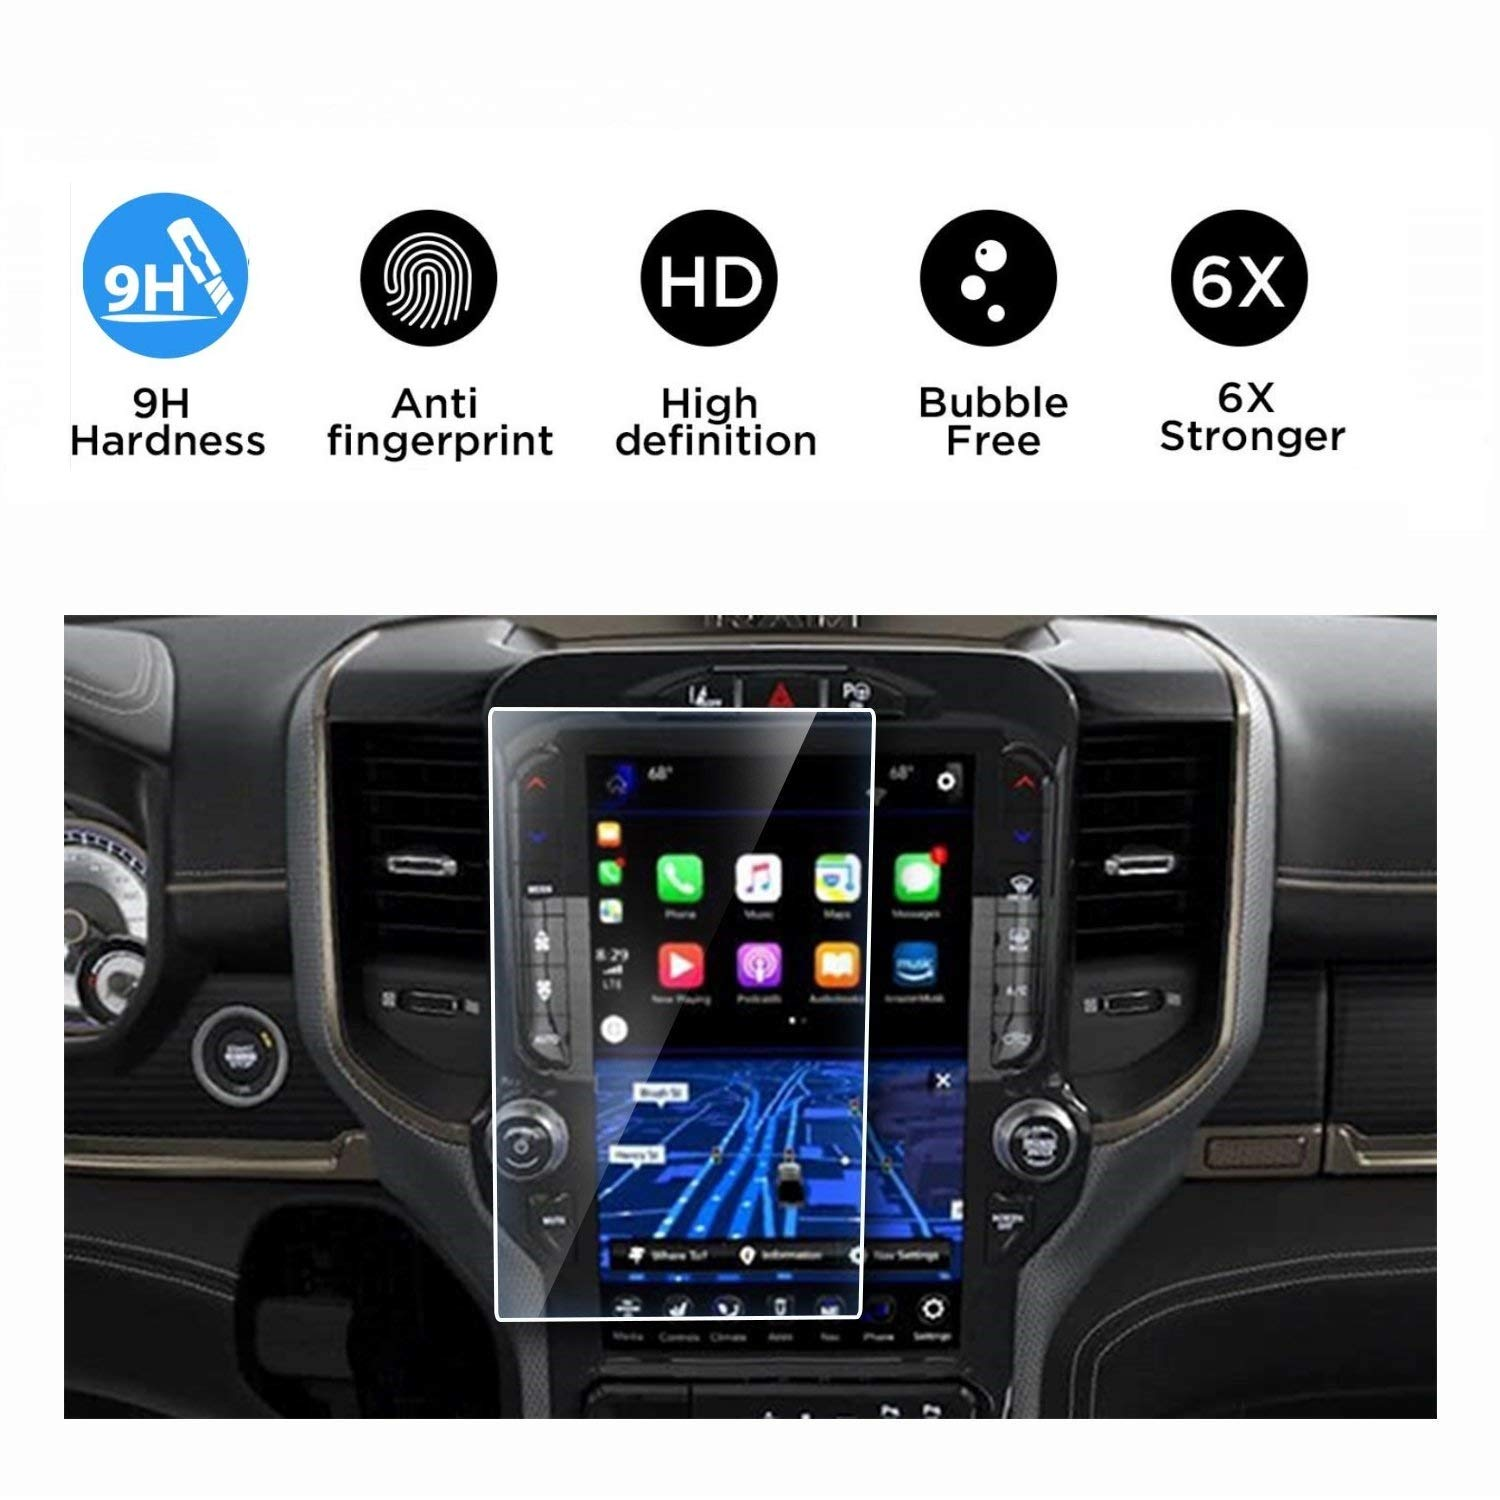 Screen Protector Compatible with 2019 Dodge Ram 1500 2500 3500 Uconnect 12 Inch Touch Screen,Flyingchan Anti Glare Scratch,Shock-Resistant, Navigation Accessories by Flyingchan